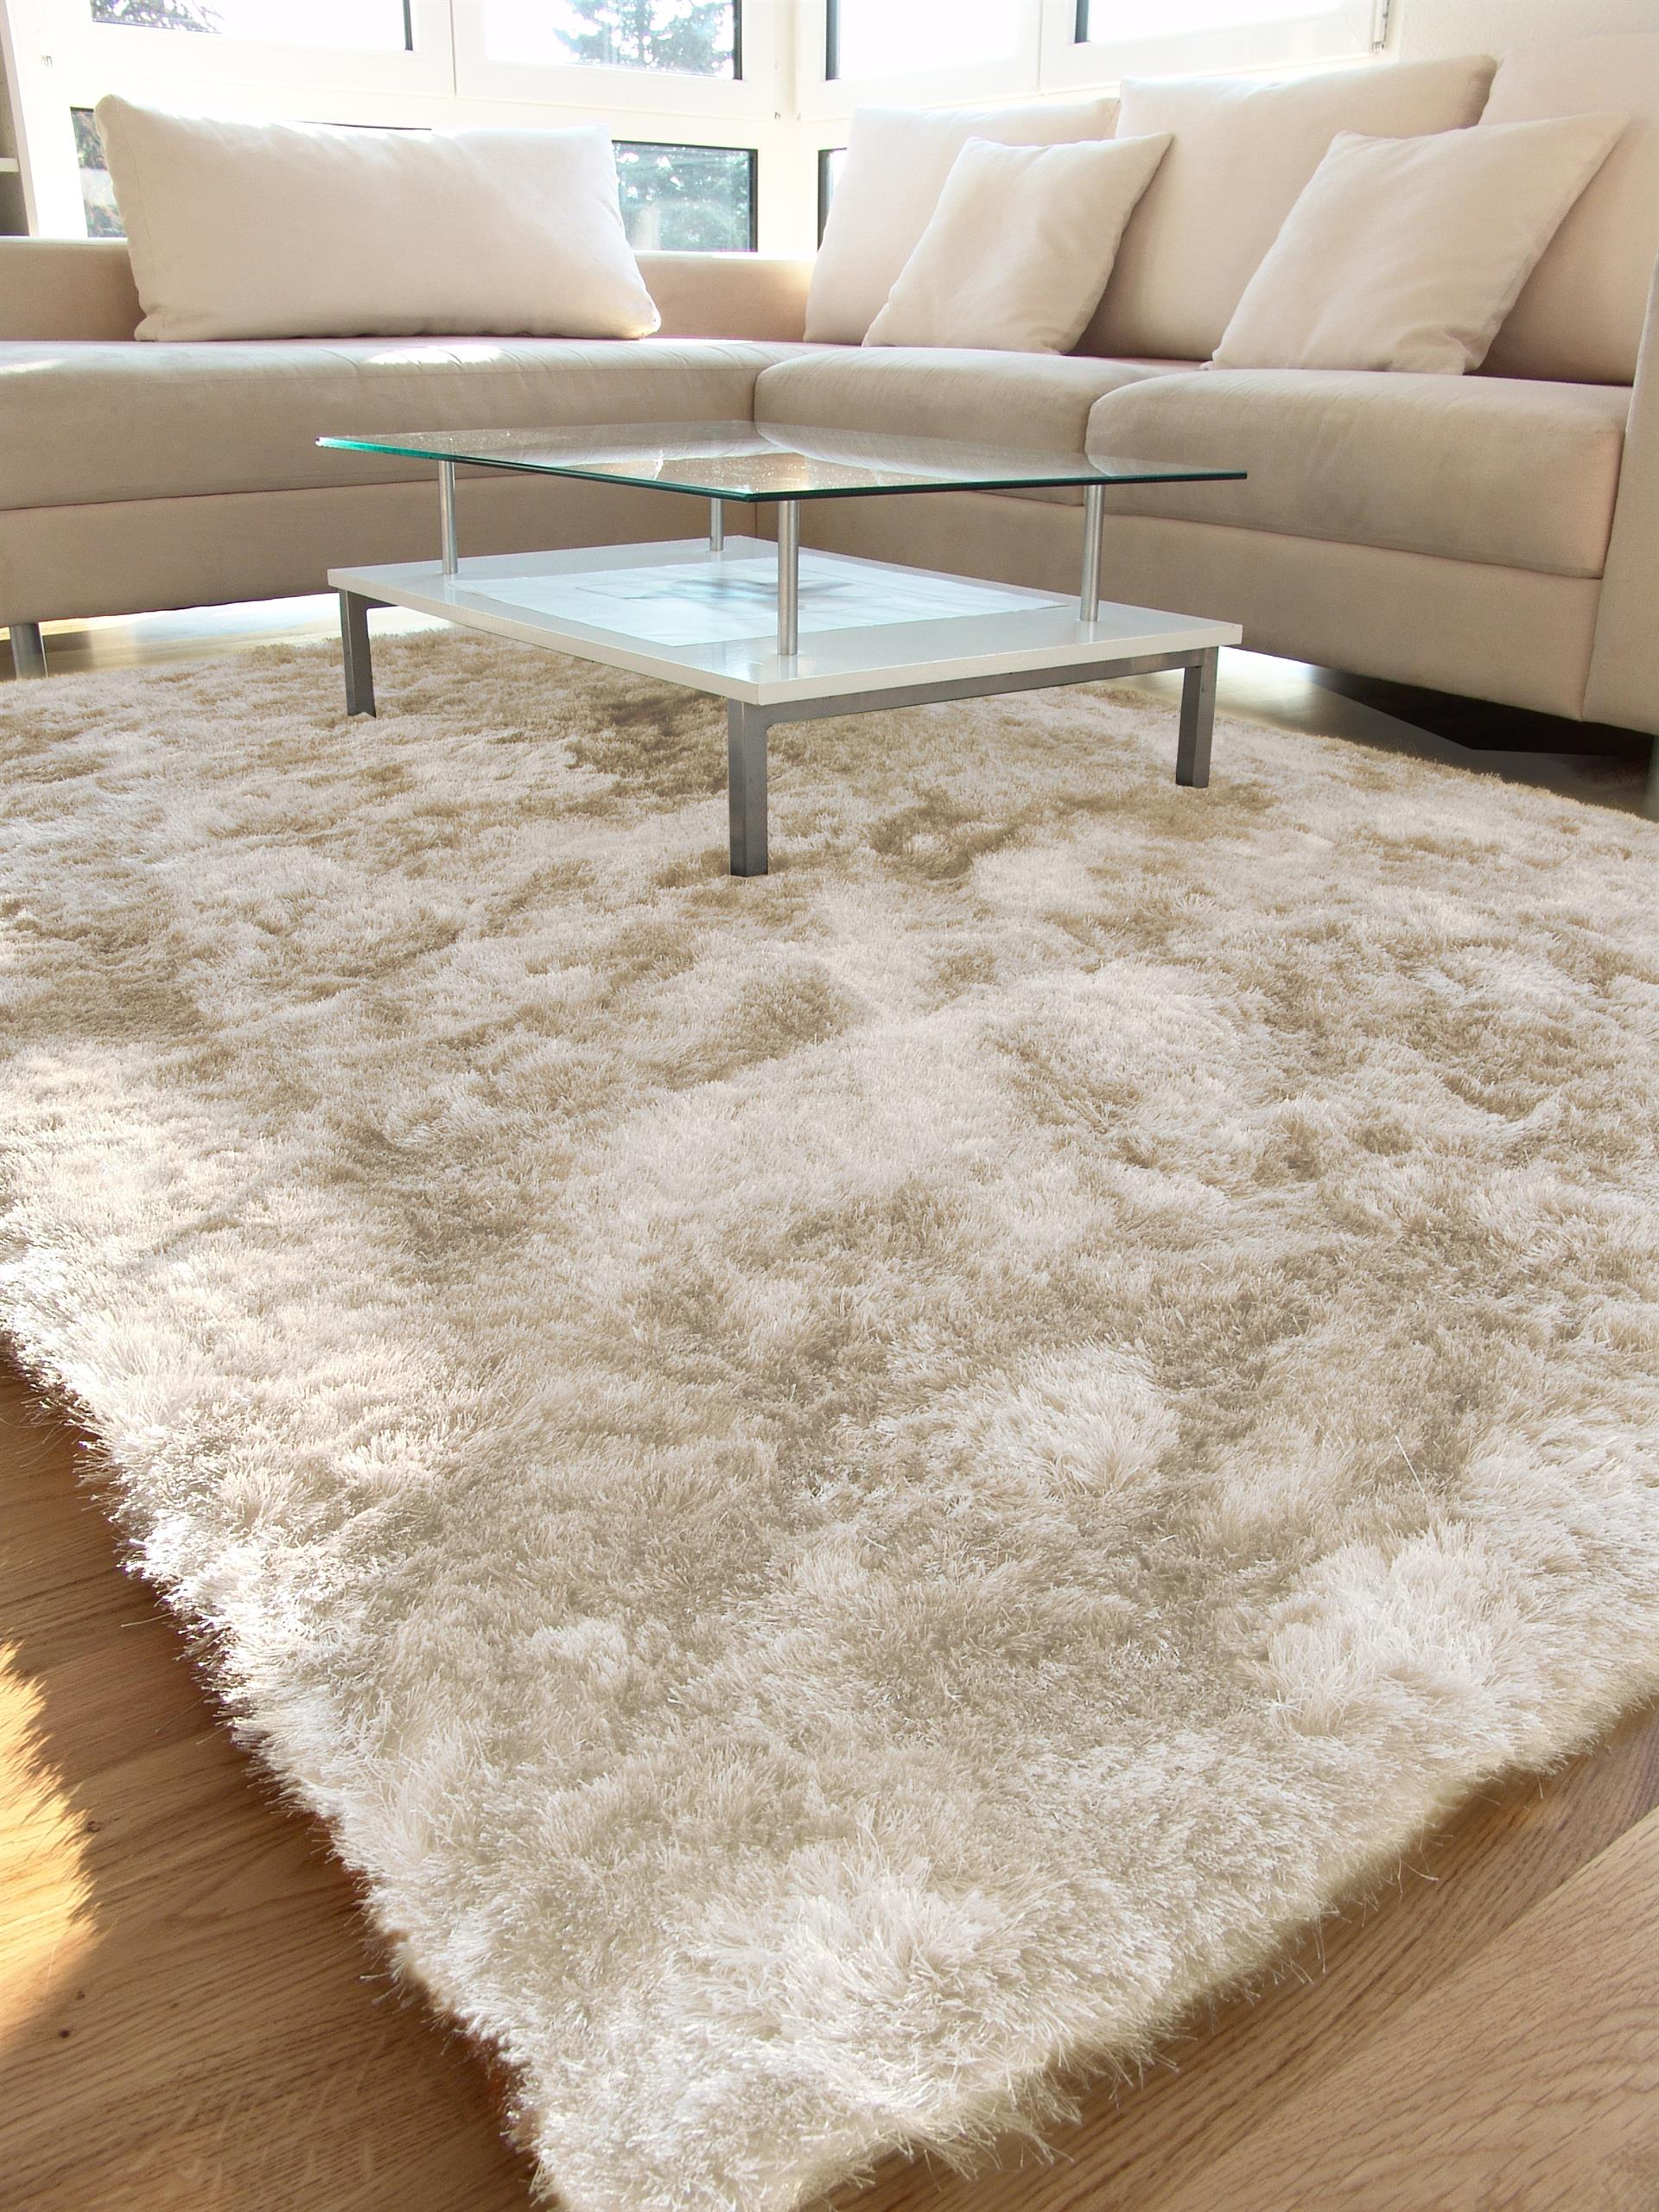 Tapis De Salon Taupe 4 Idees De Decoration Interieure French Decor